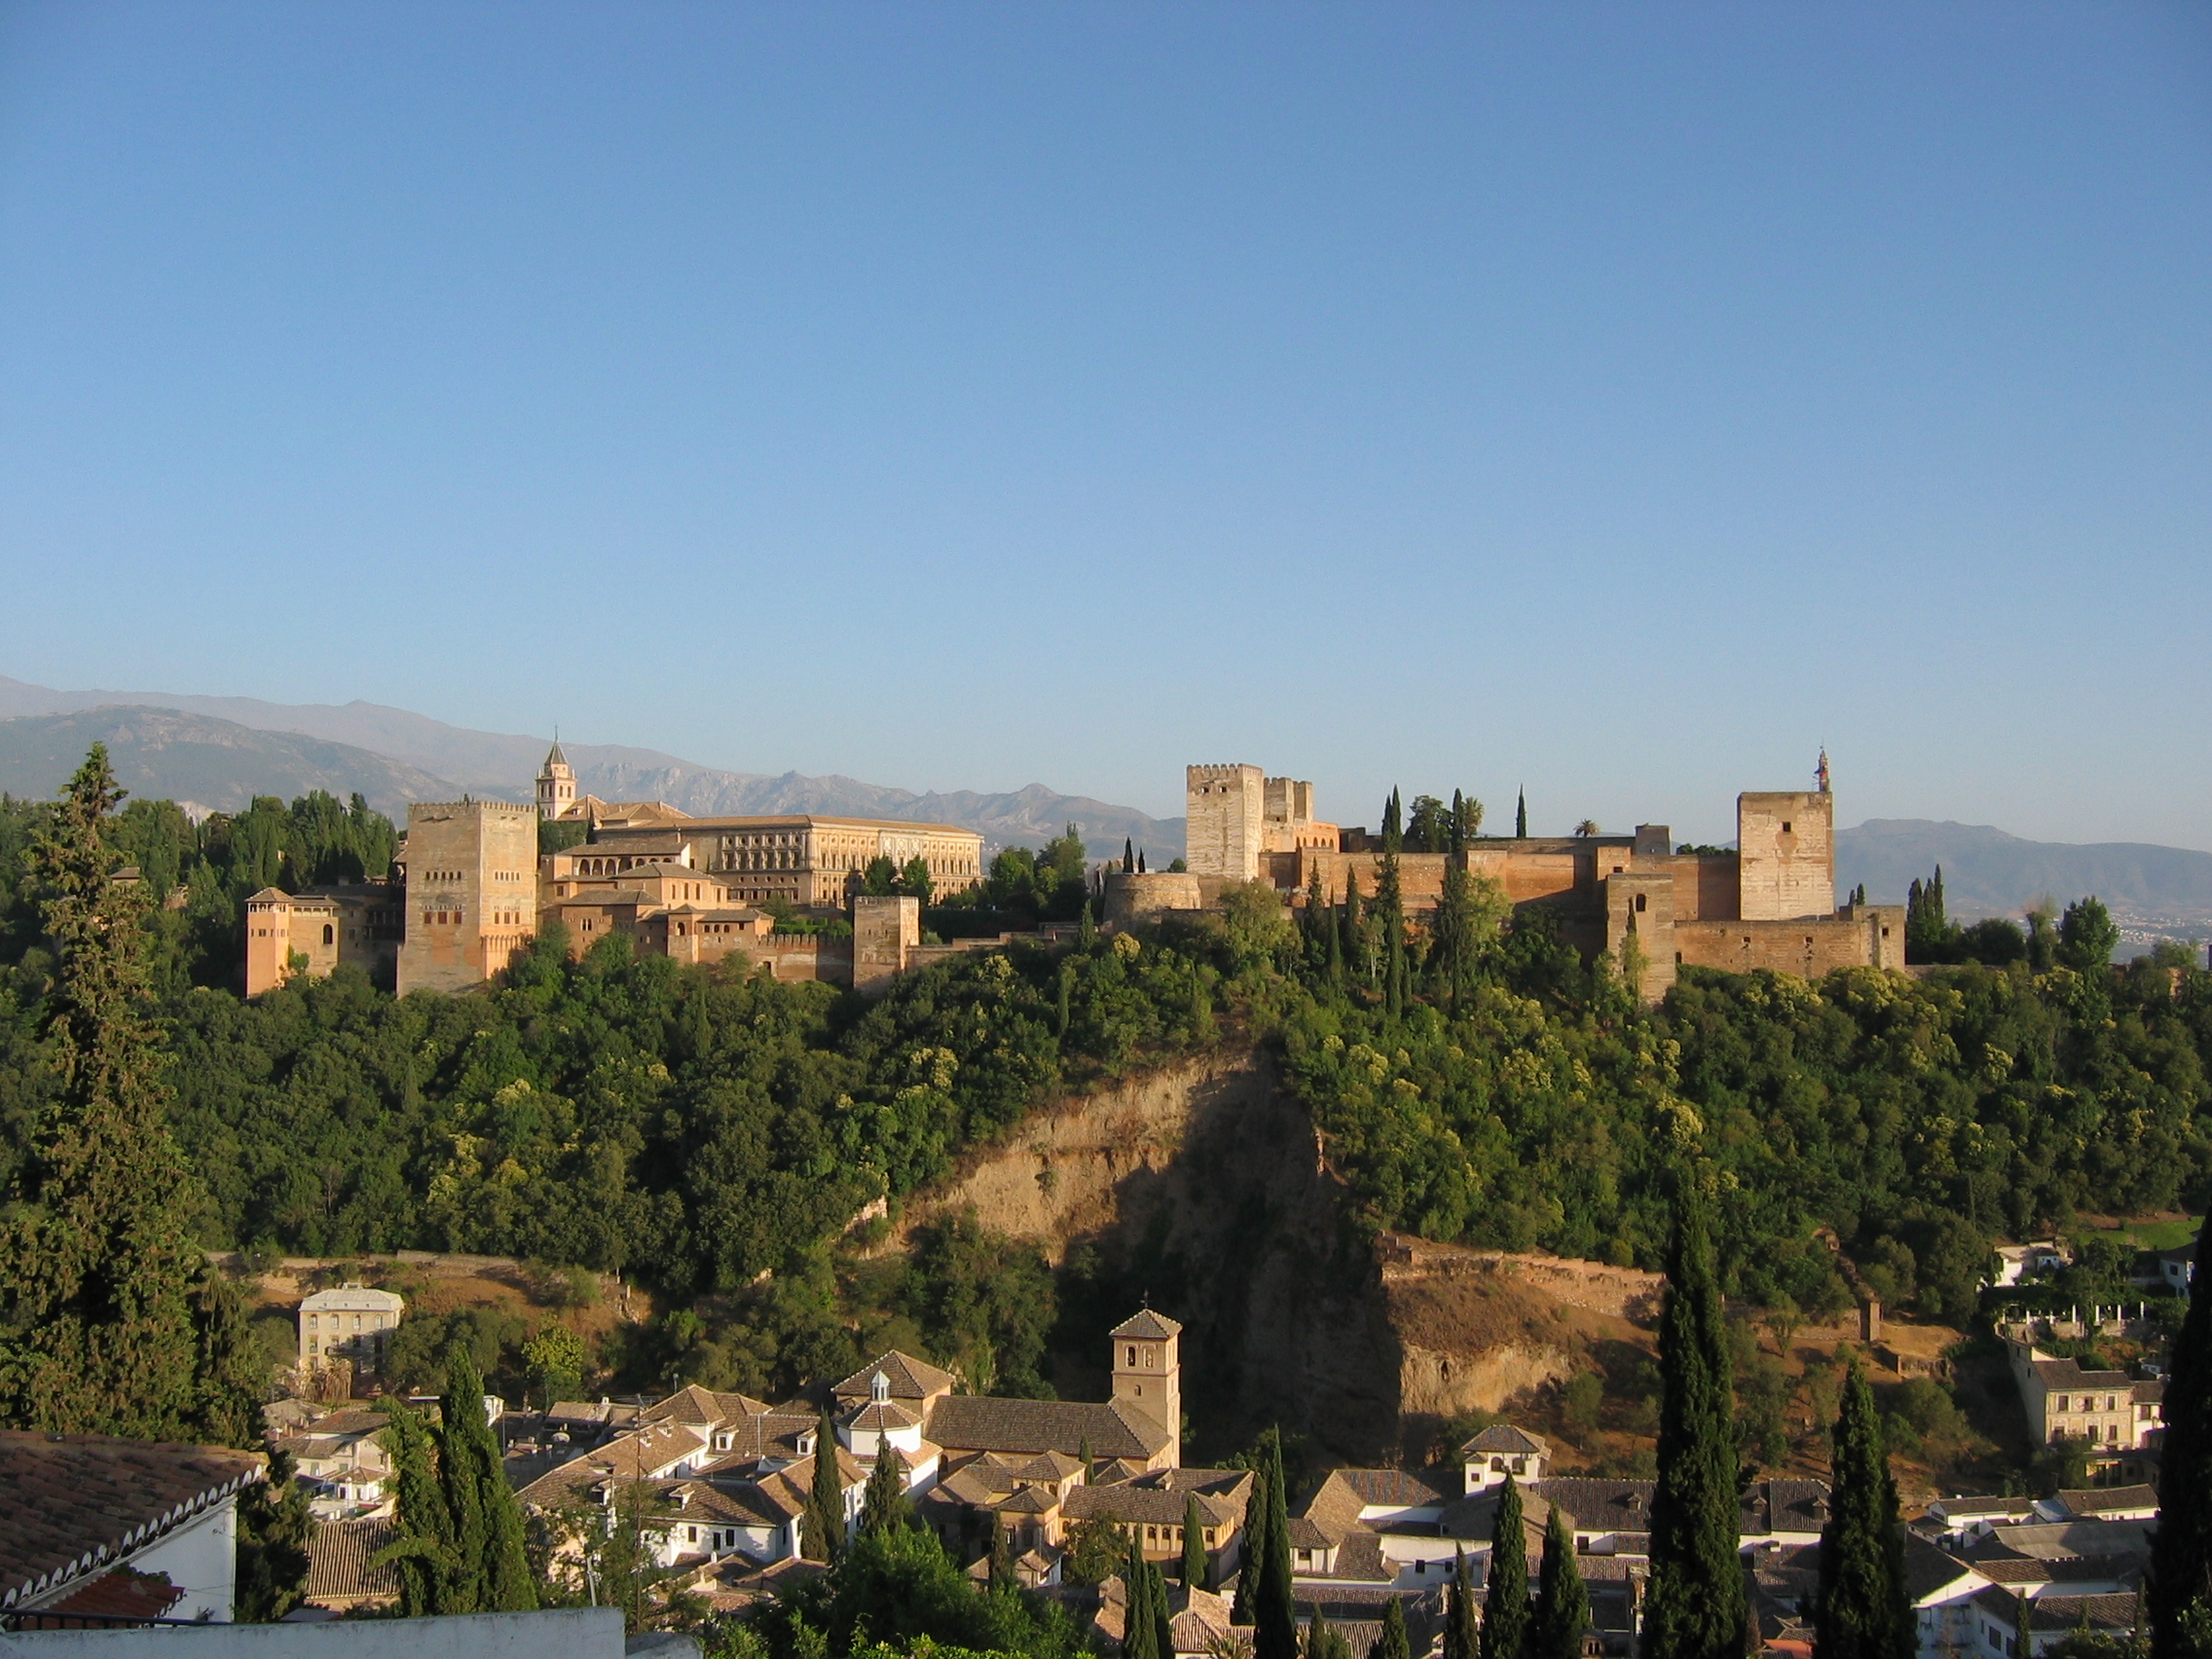 The Alhambra is an architectural gem